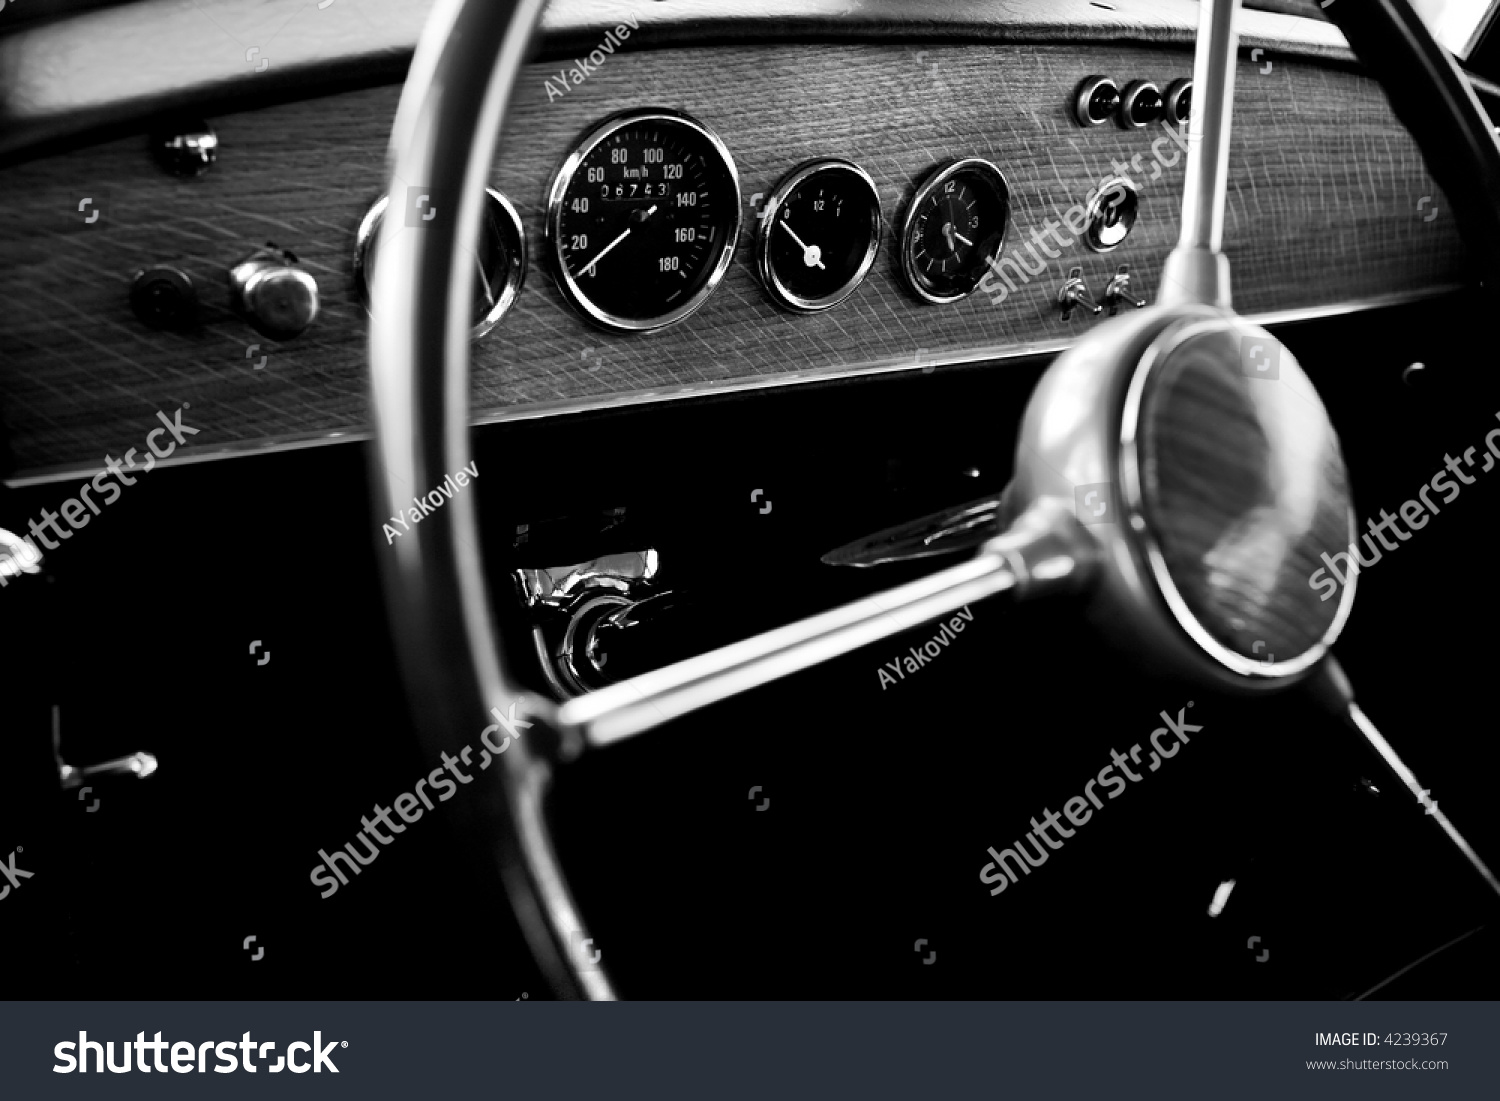 view of the interior of an old vintage car stock photo 4239367 shutterstock. Black Bedroom Furniture Sets. Home Design Ideas